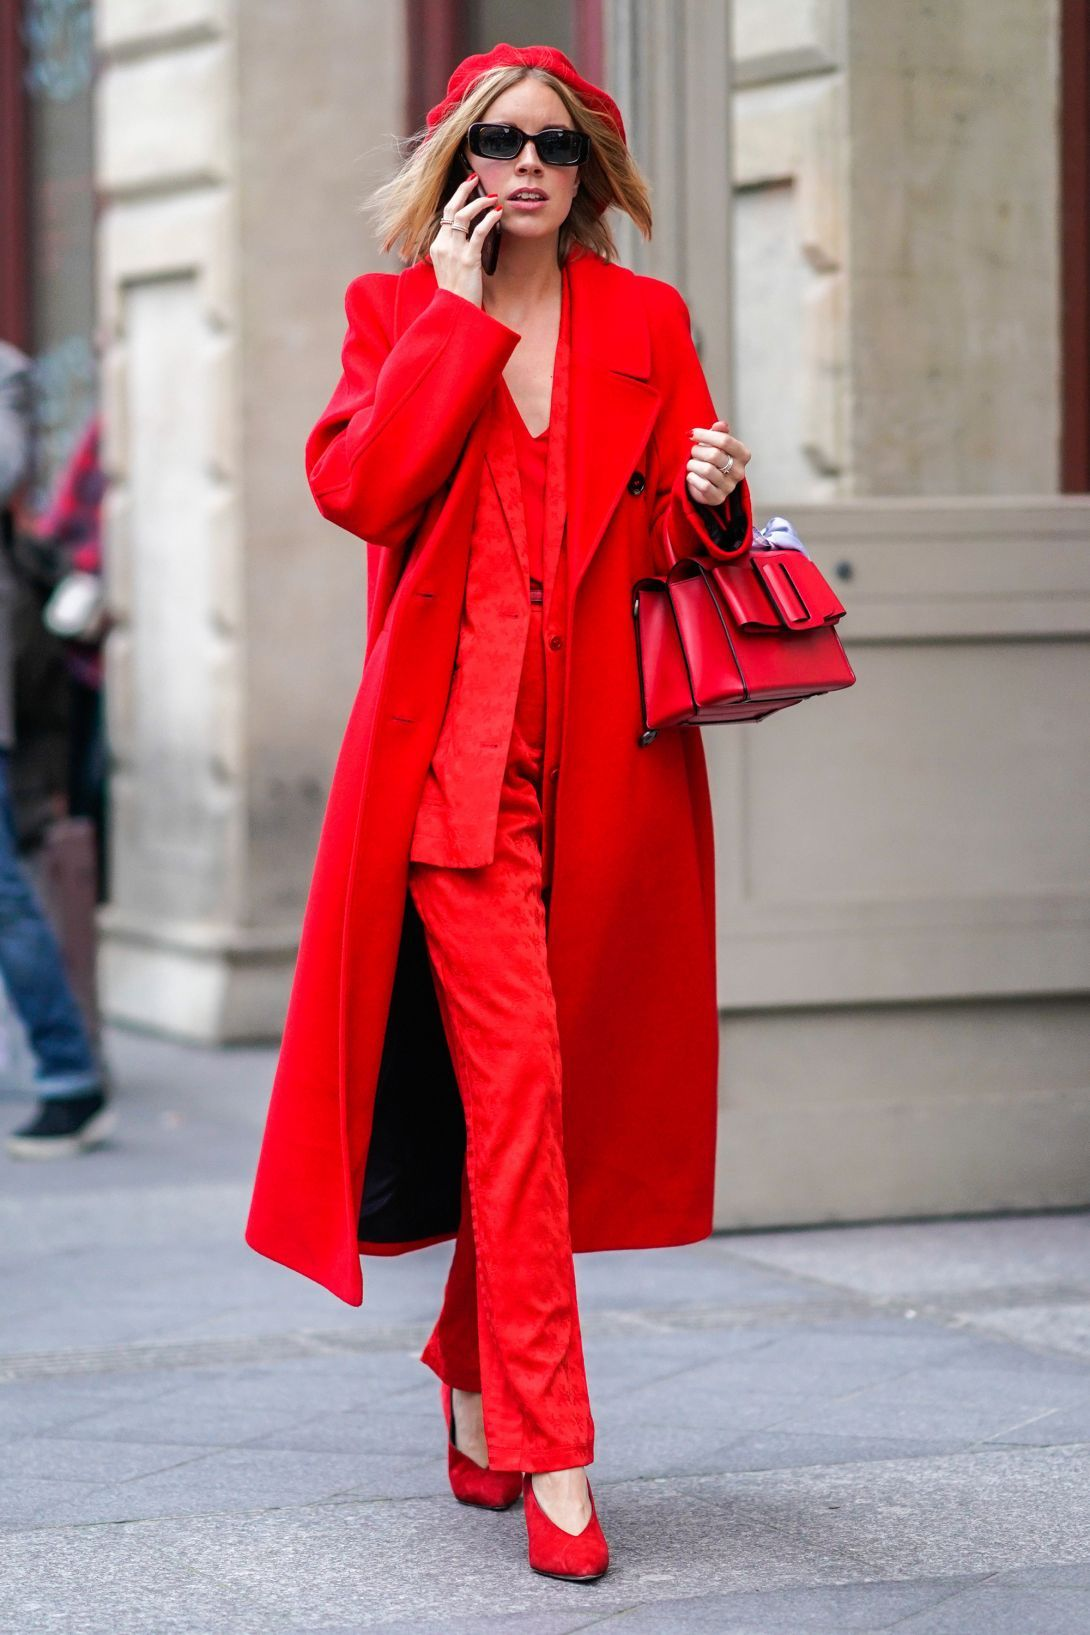 Buy How to pants red wear in spring picture trends